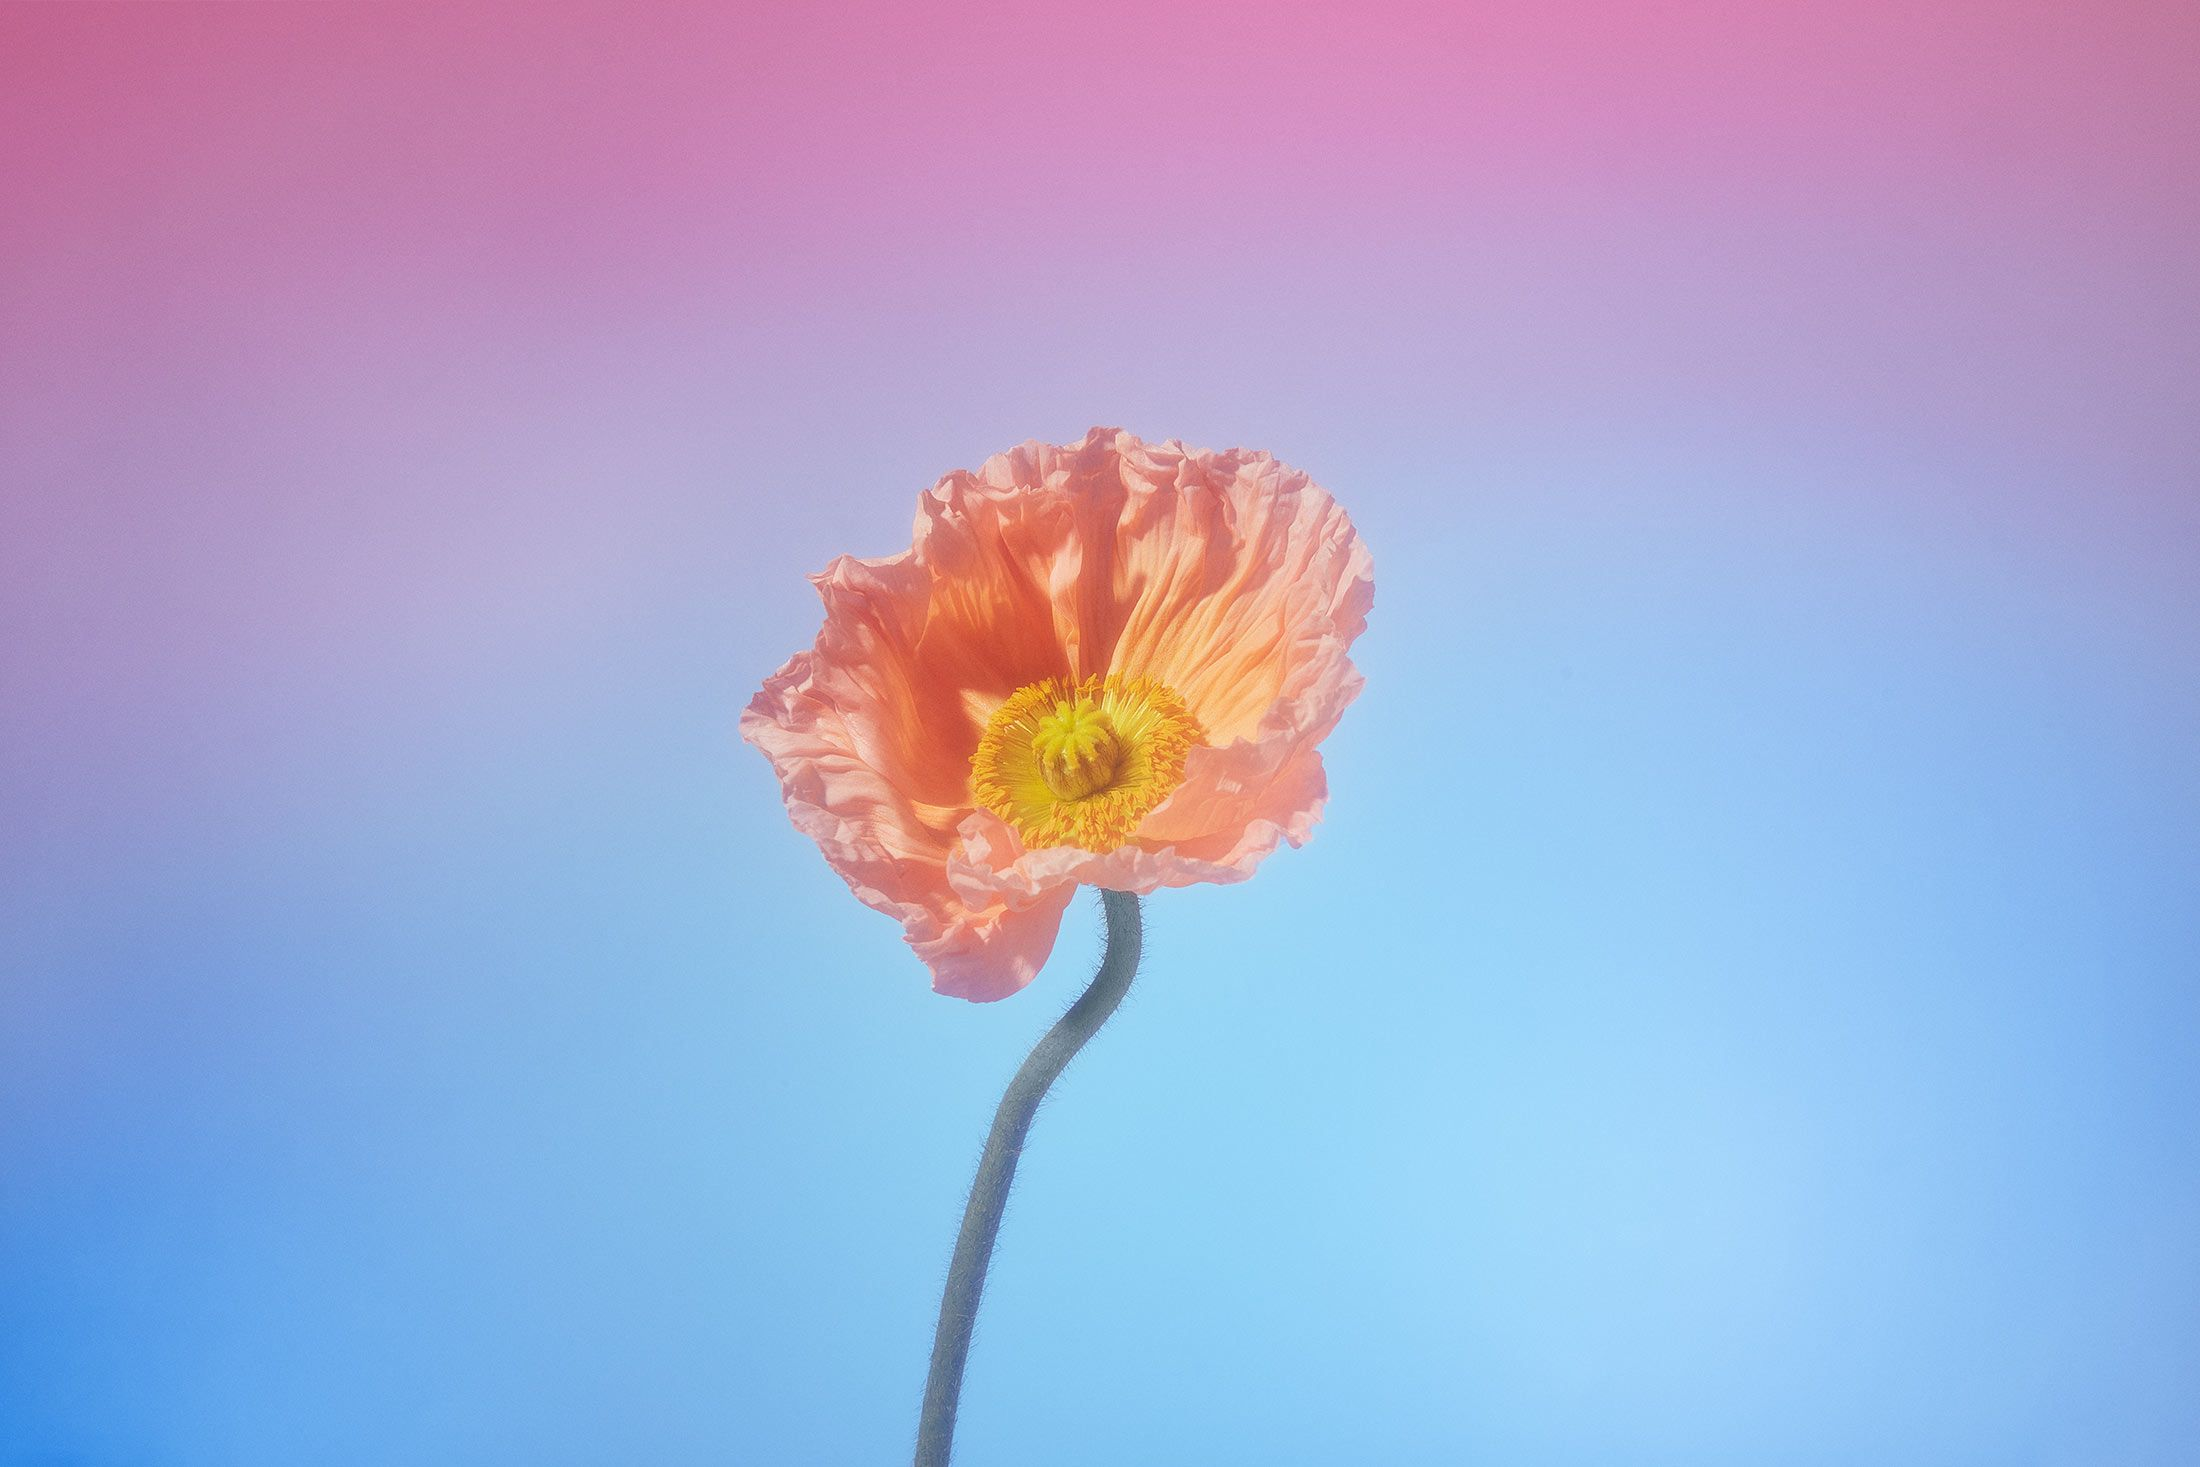 A flower on a gradient background